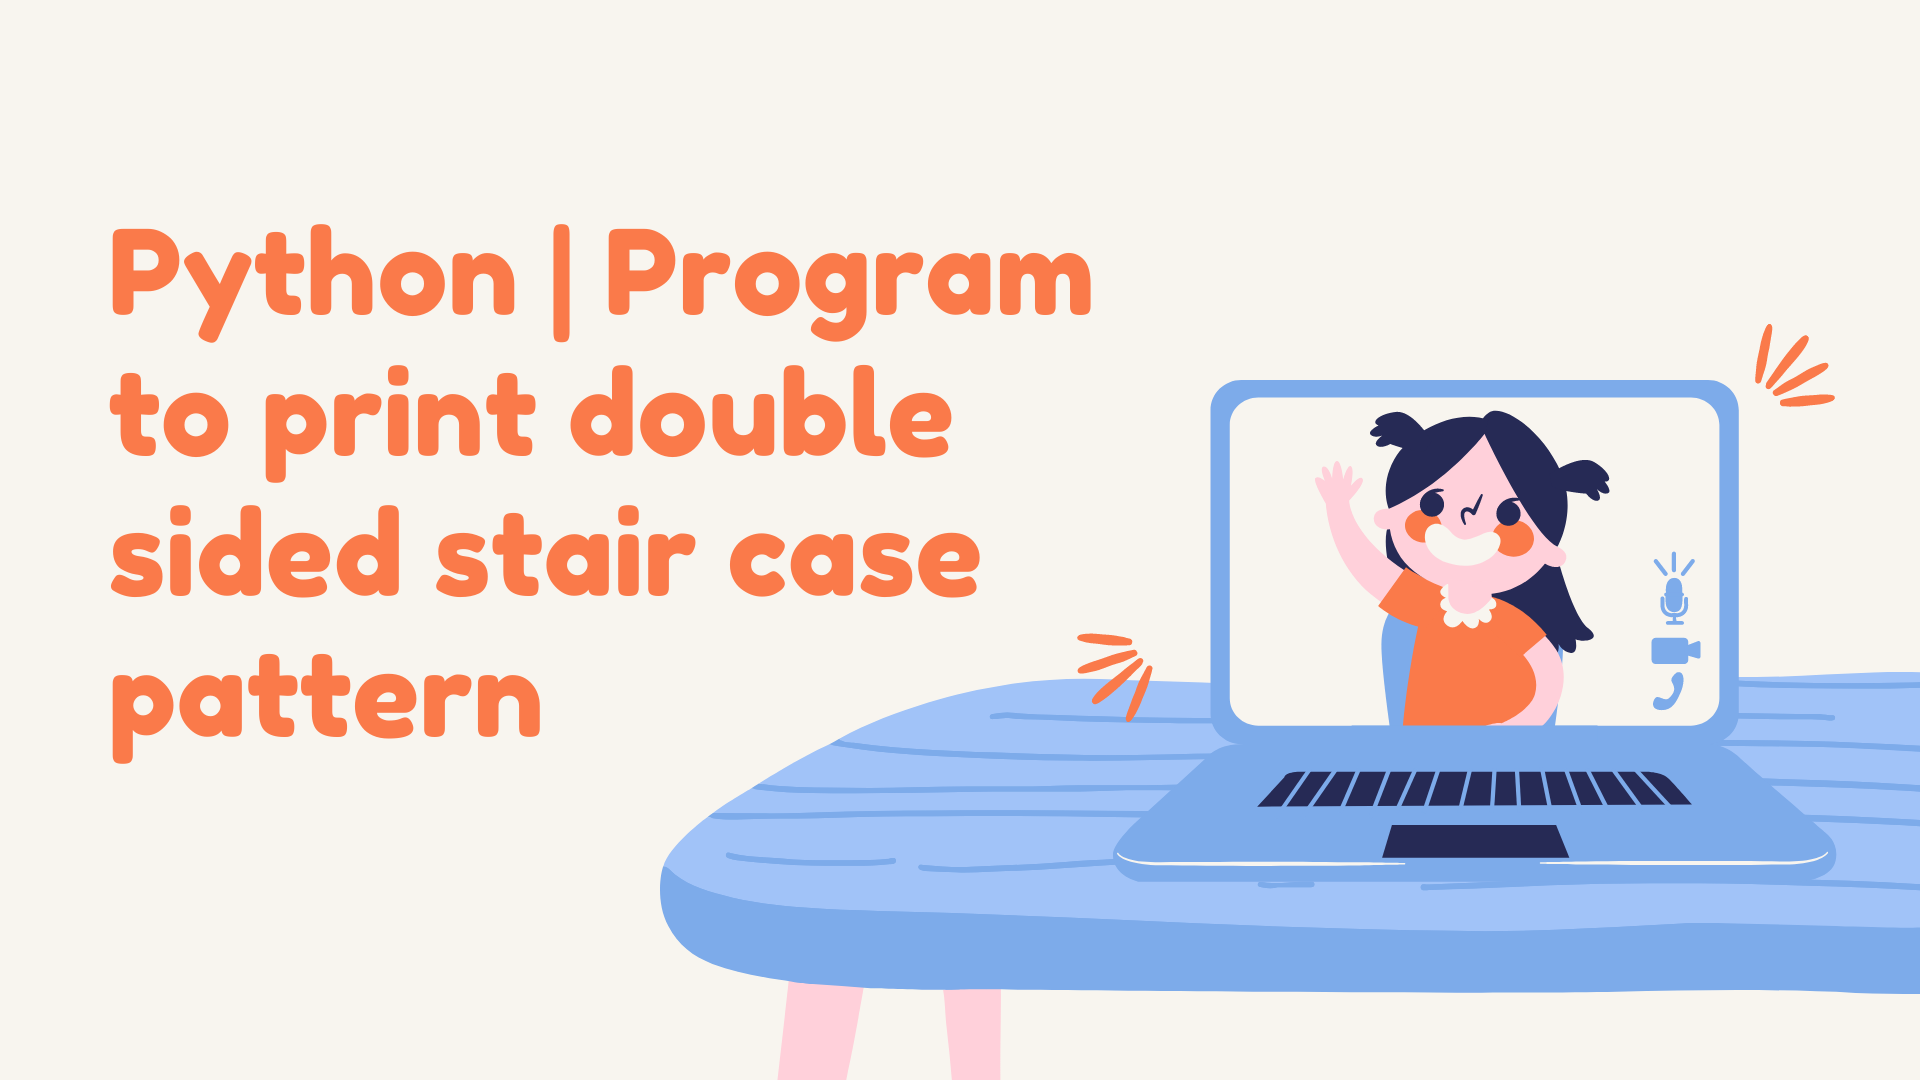 Python | Program to print double sided stair case pattern